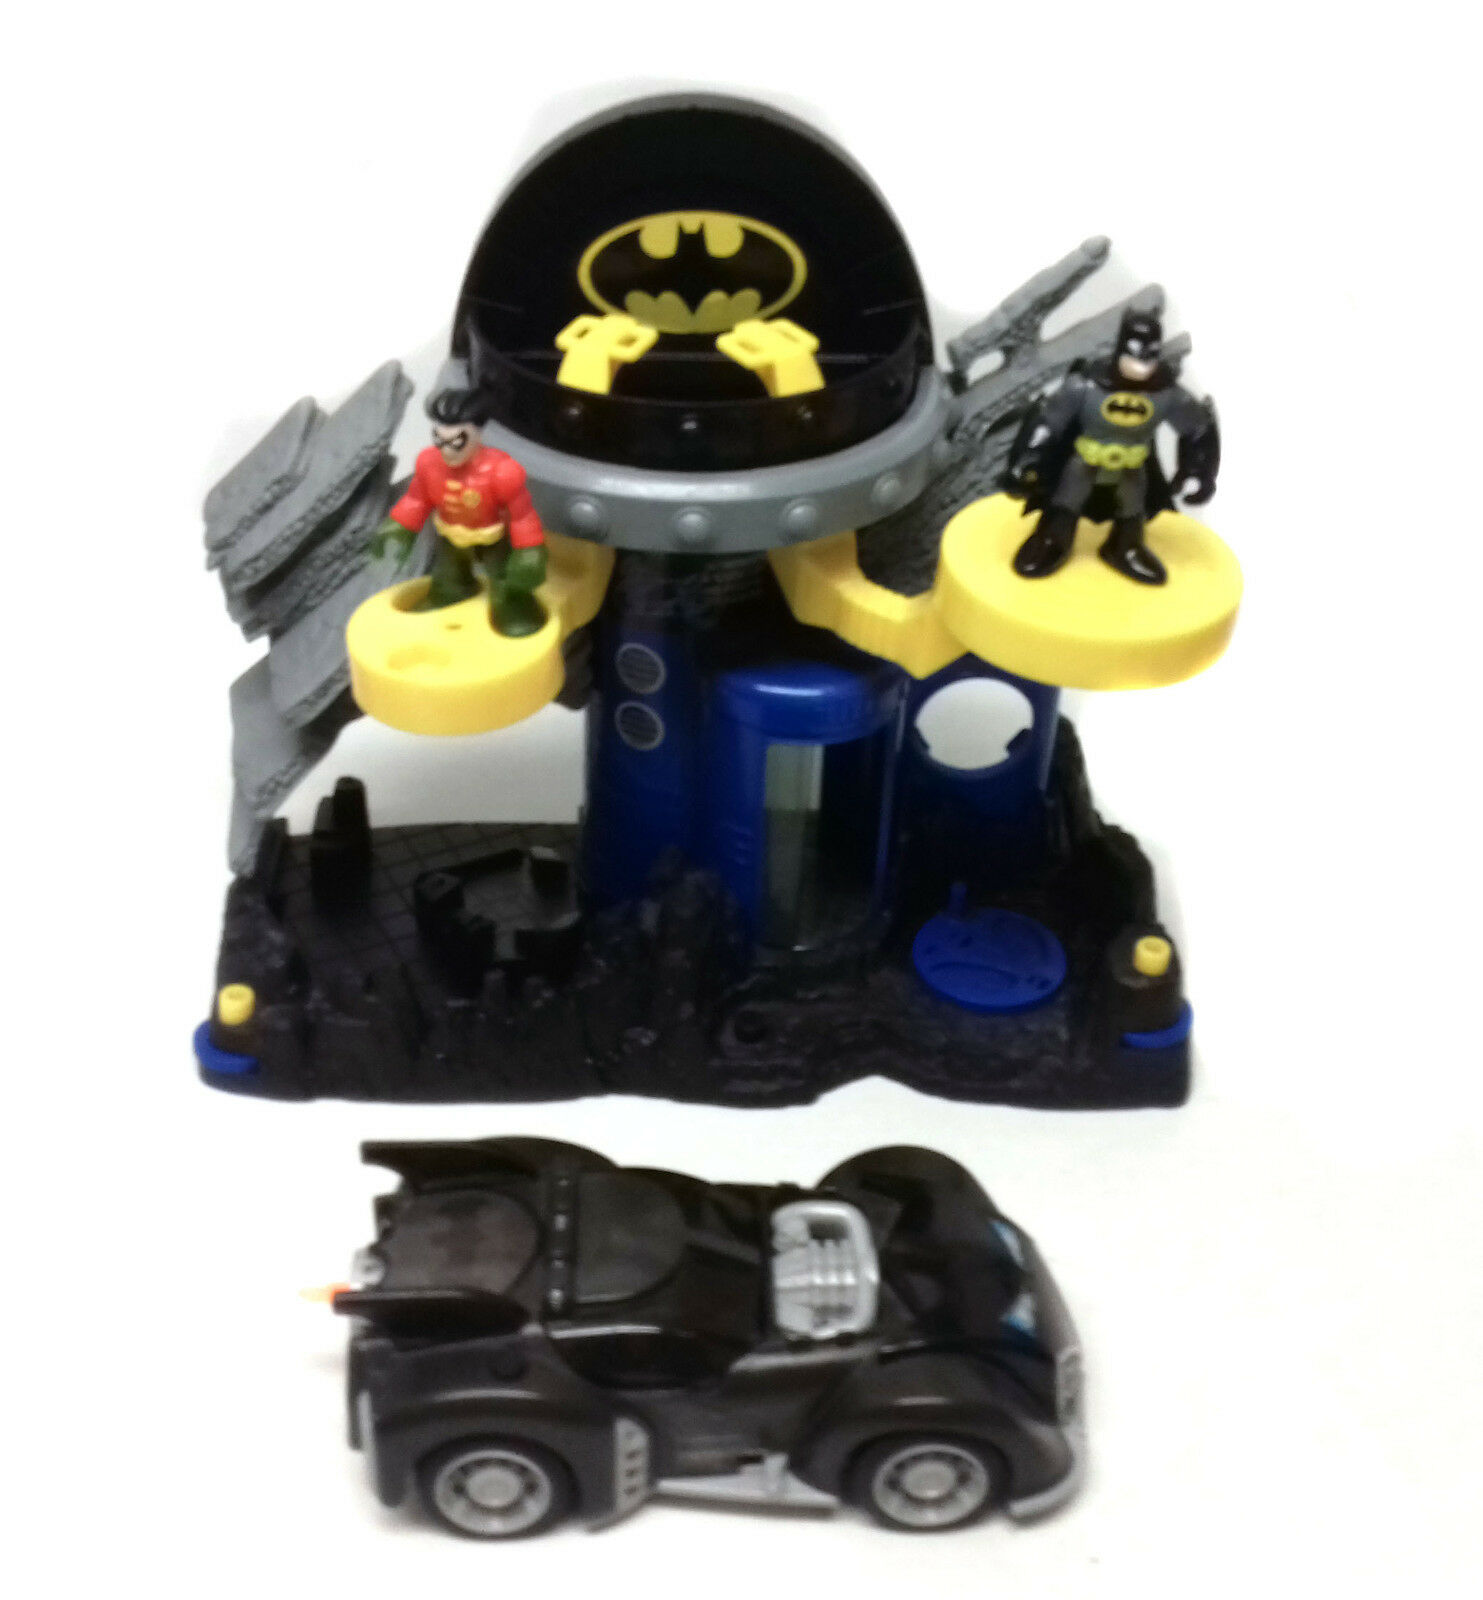 Fisher Price toys IMAGINEXT BATMAN Medium Größe BATCAVE figures & Car set